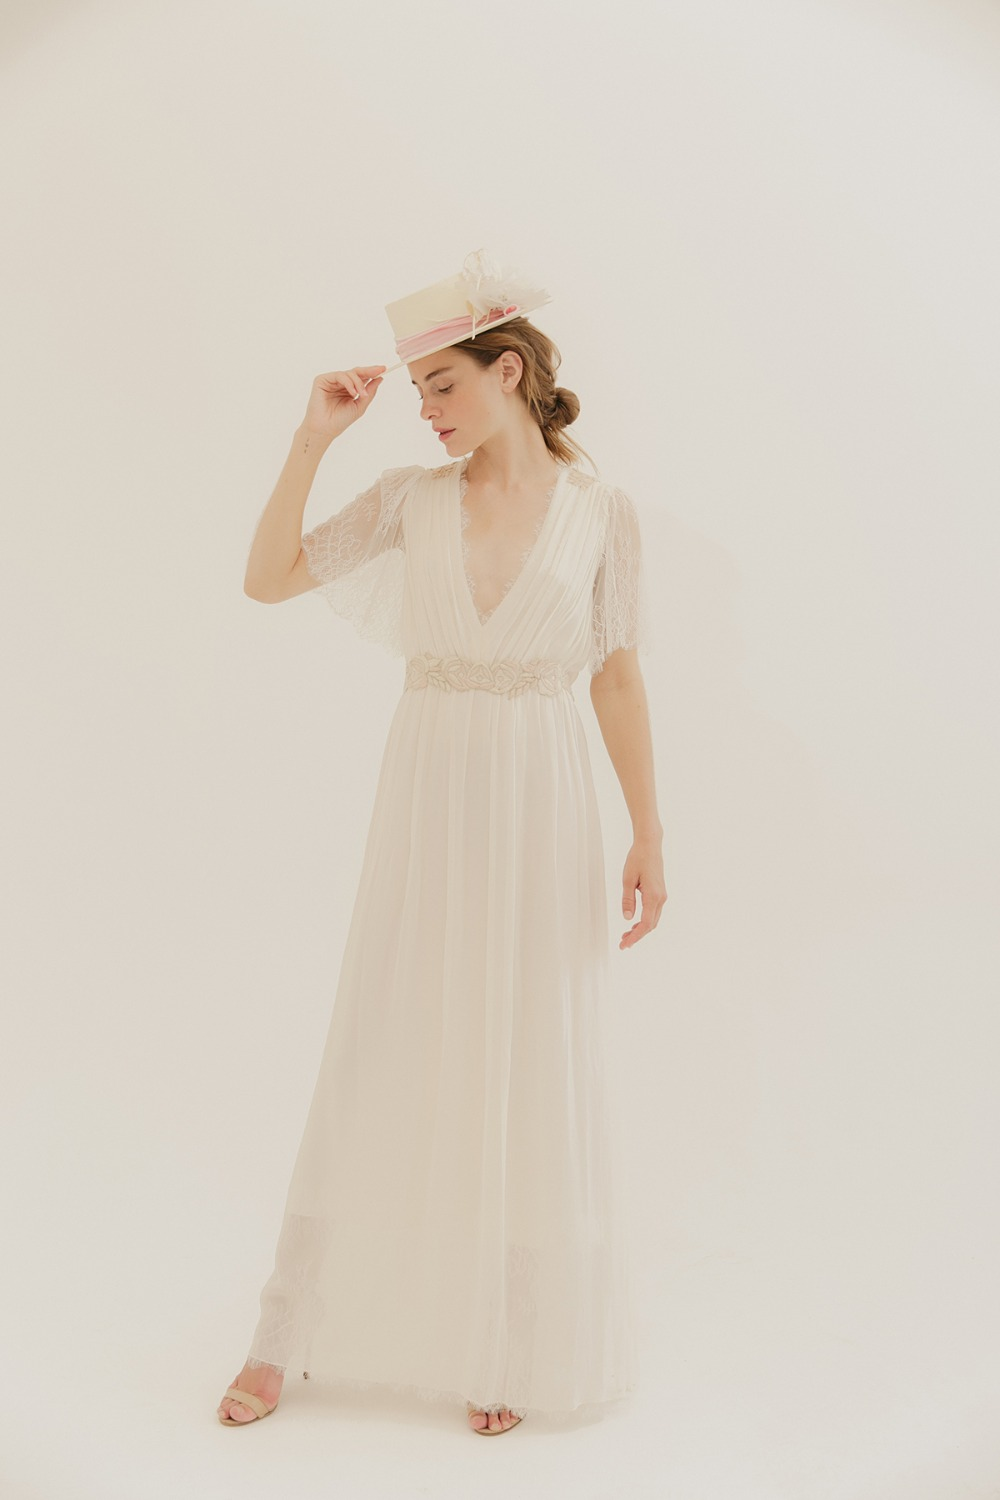 vintage wedding dress by by L. Wells